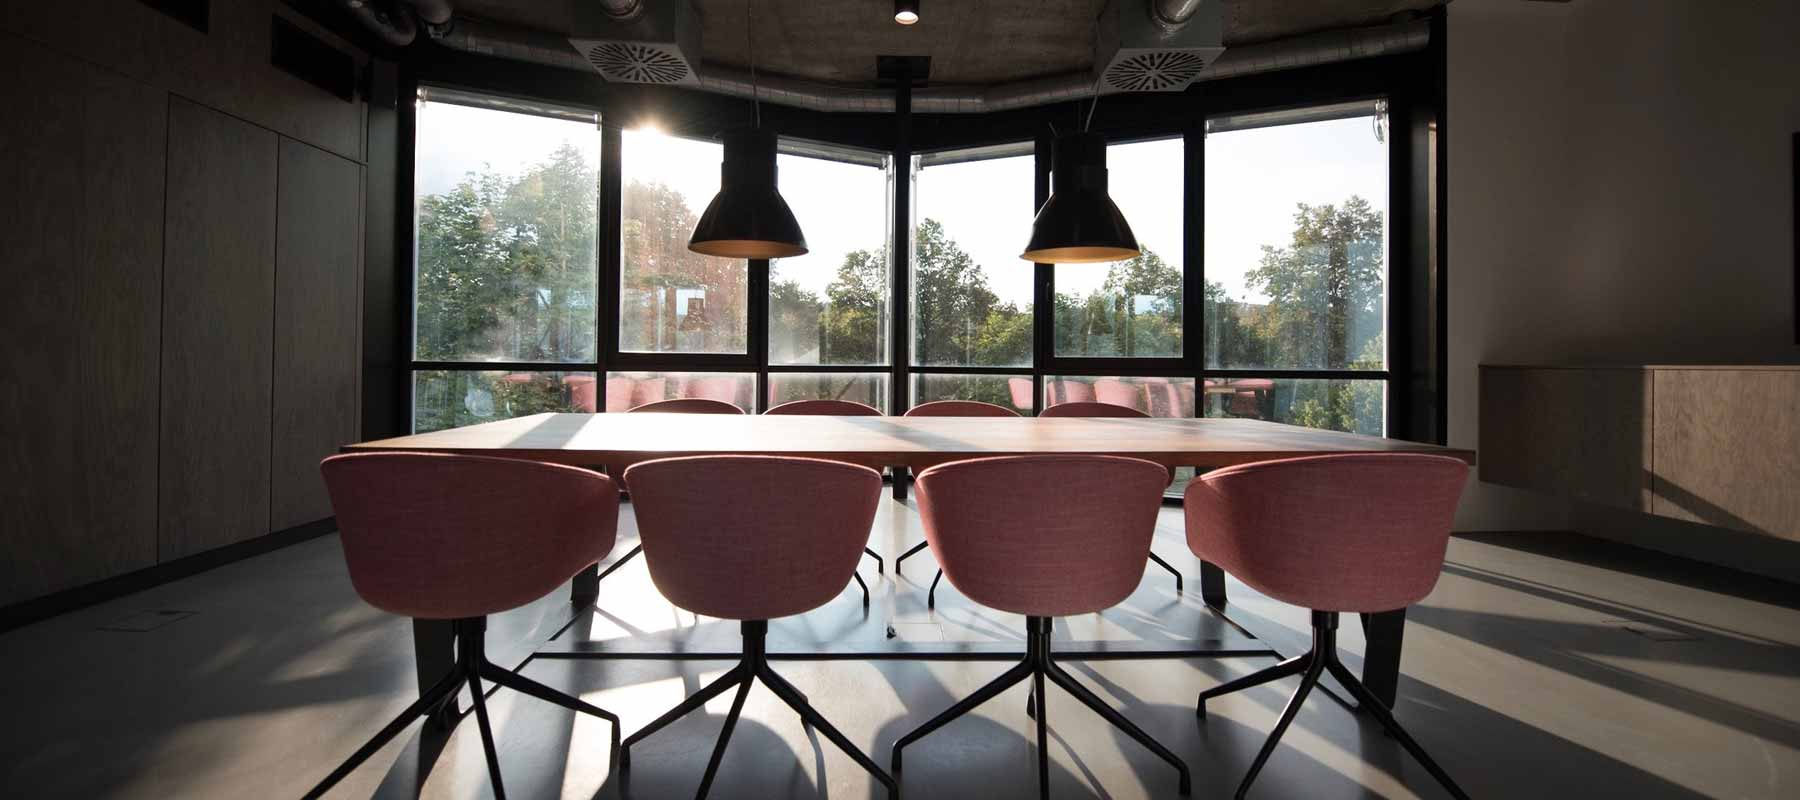 a boardroom of eight chairs and a long table overlooking large windows with a view